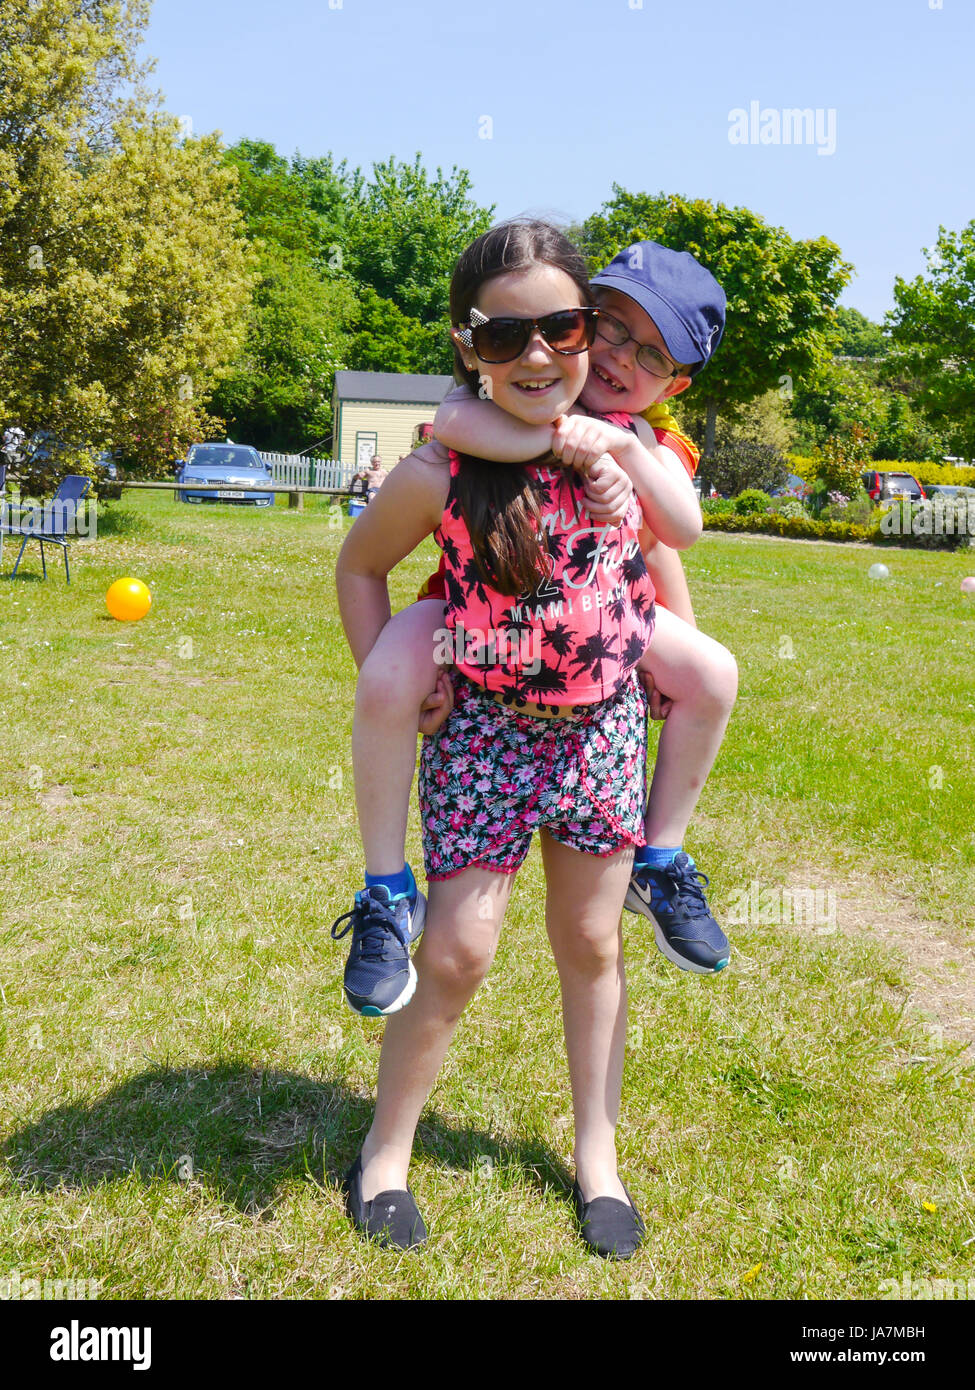 A young girl gives her younger brother a piggy back - Stock Image